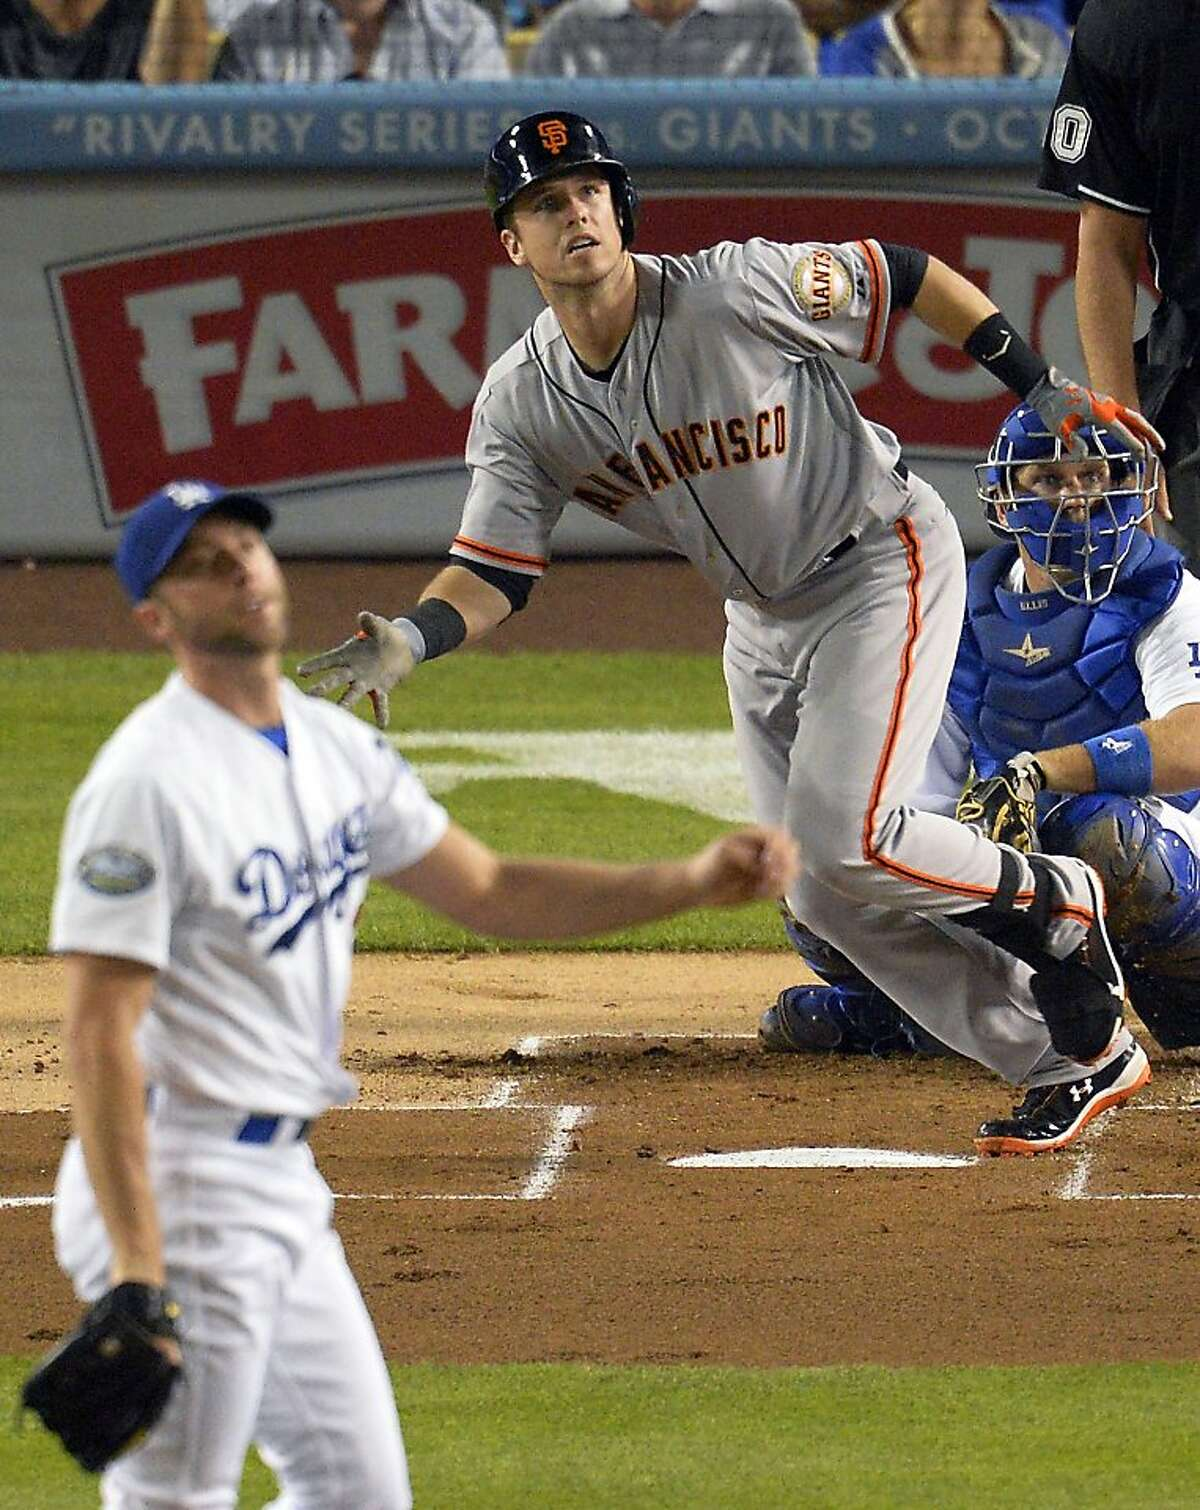 San Francisco Giants' Buster Posey, center, watches his solo home run off Los Angeles Dodgers starting pitcher Chris Capuano, left, during the second inning of a baseball game, Tuesday, Oct. 2, 2012, in Los Angeles. Dodgers catcher A.J. Ellis is at right.